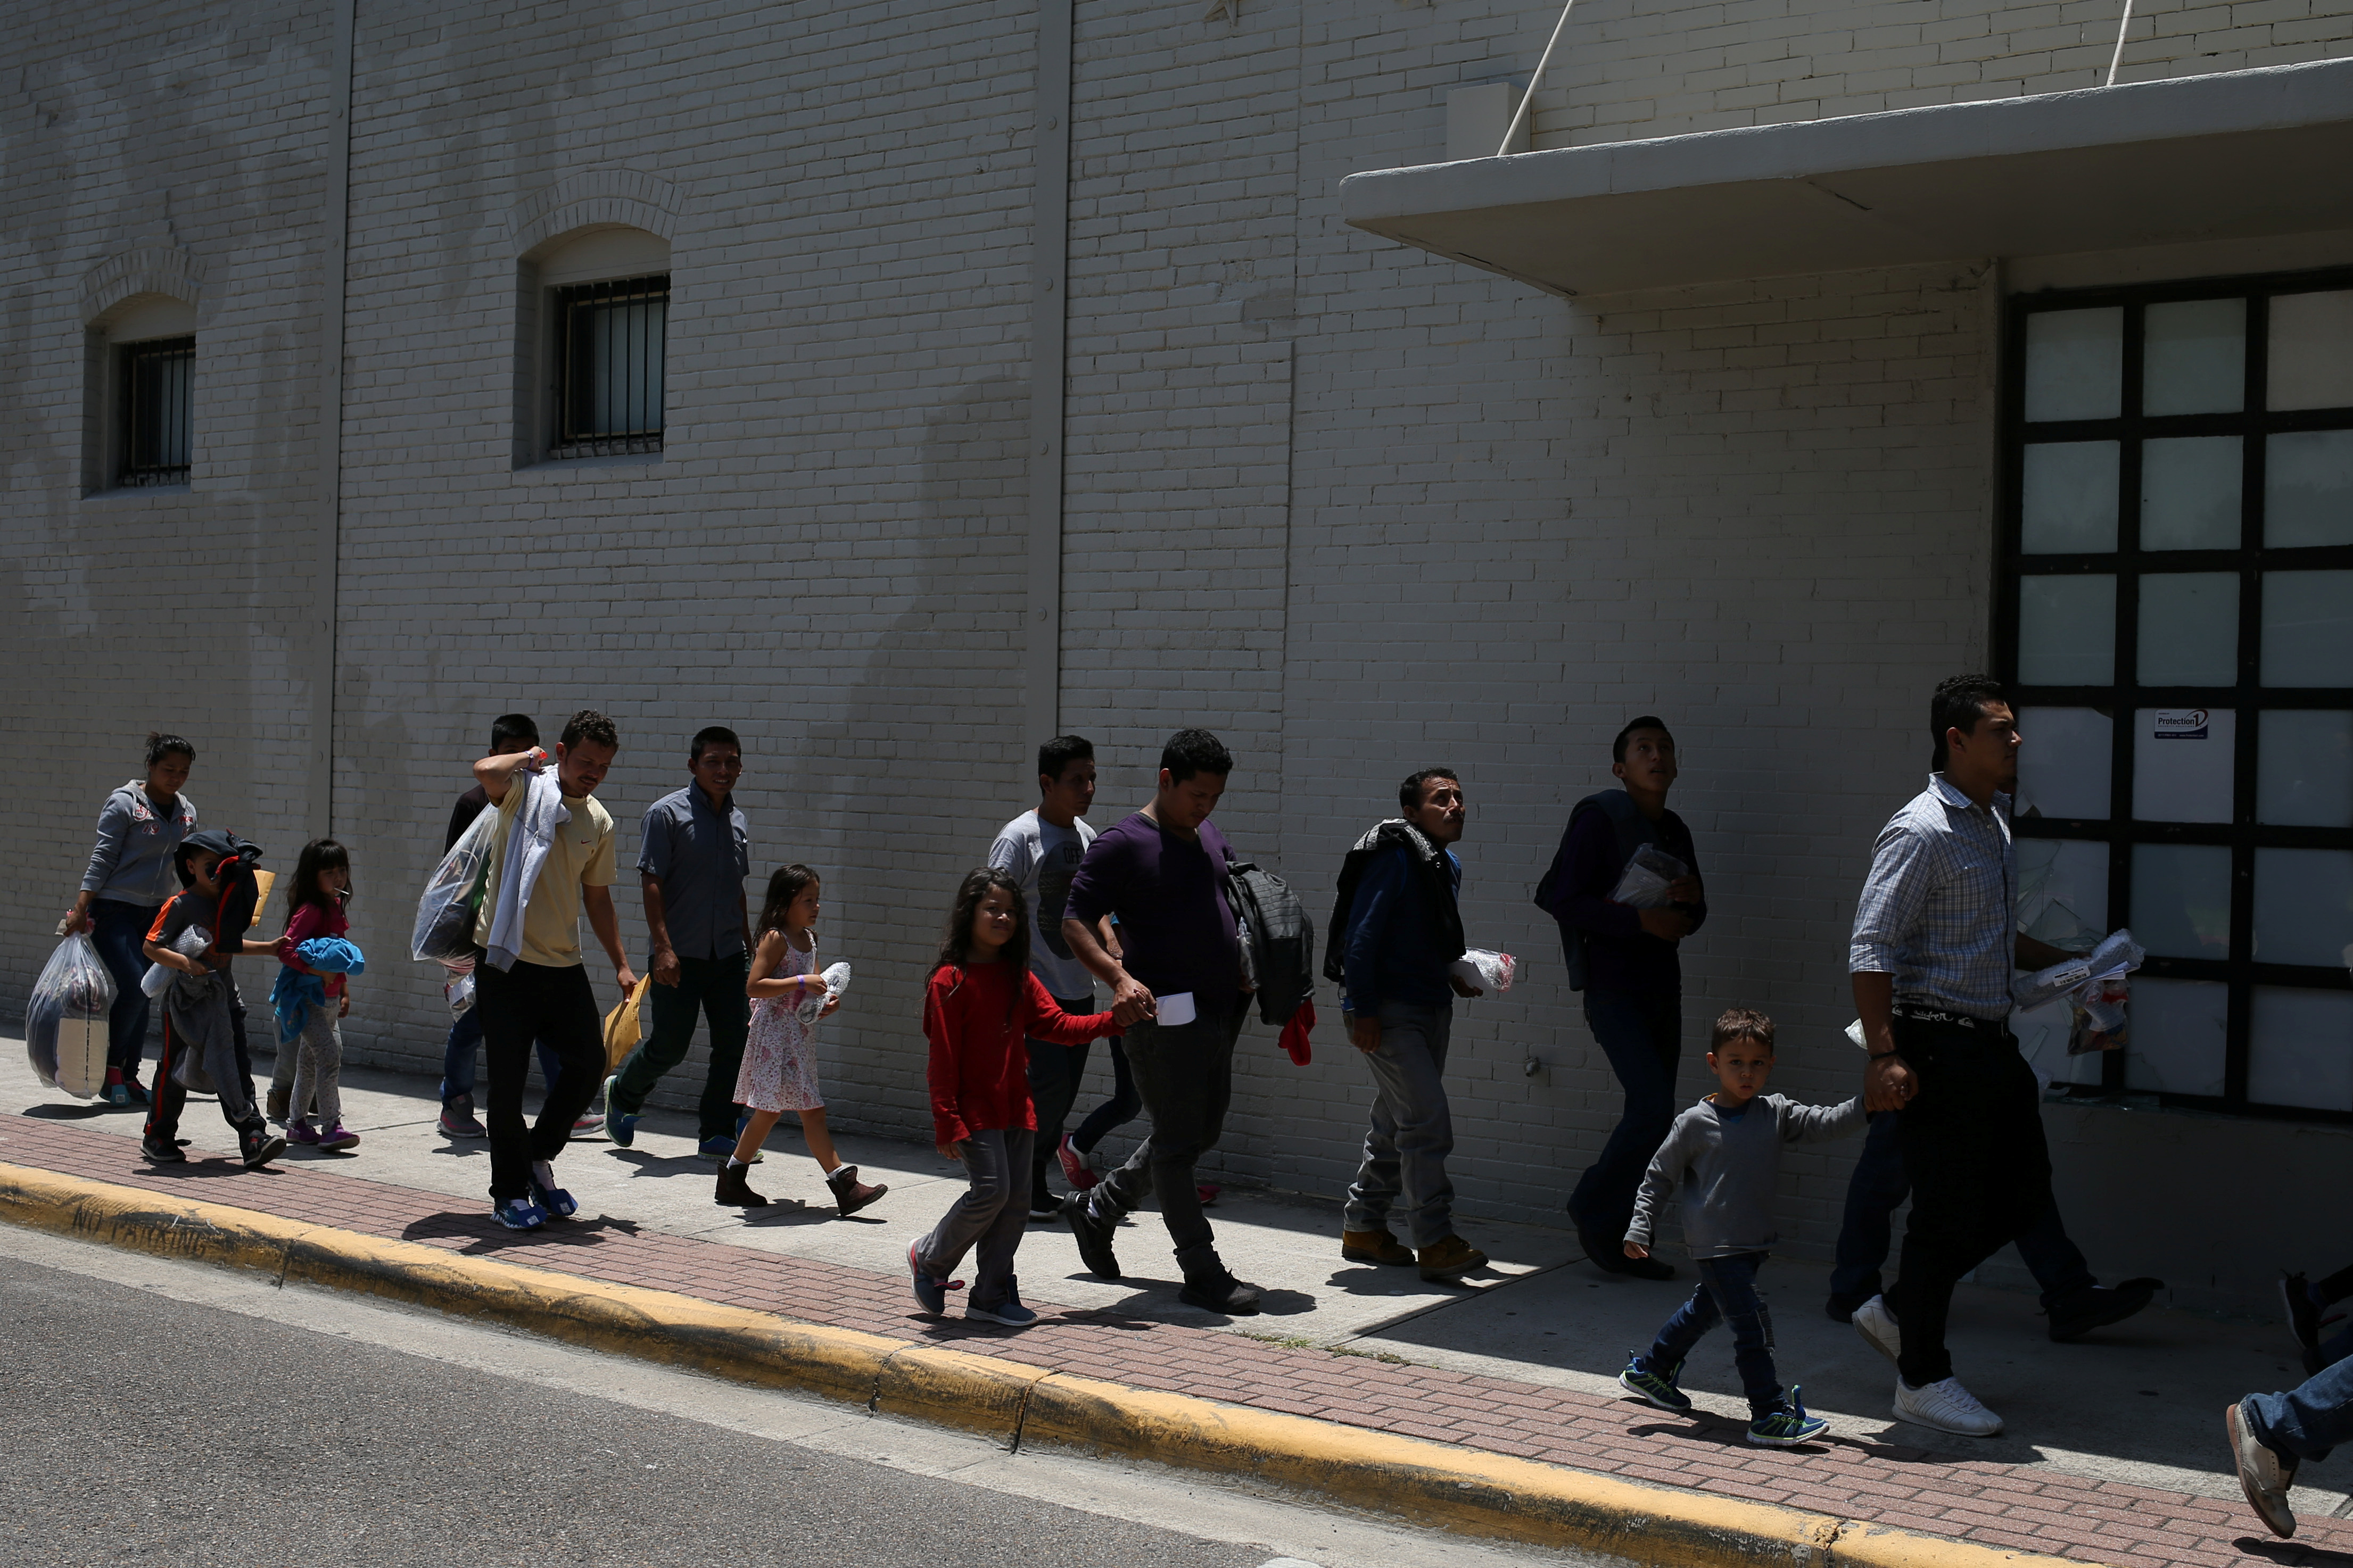 Undocumented immigrant families walk from a bus depot to a respite center after being released from detention in McAllen